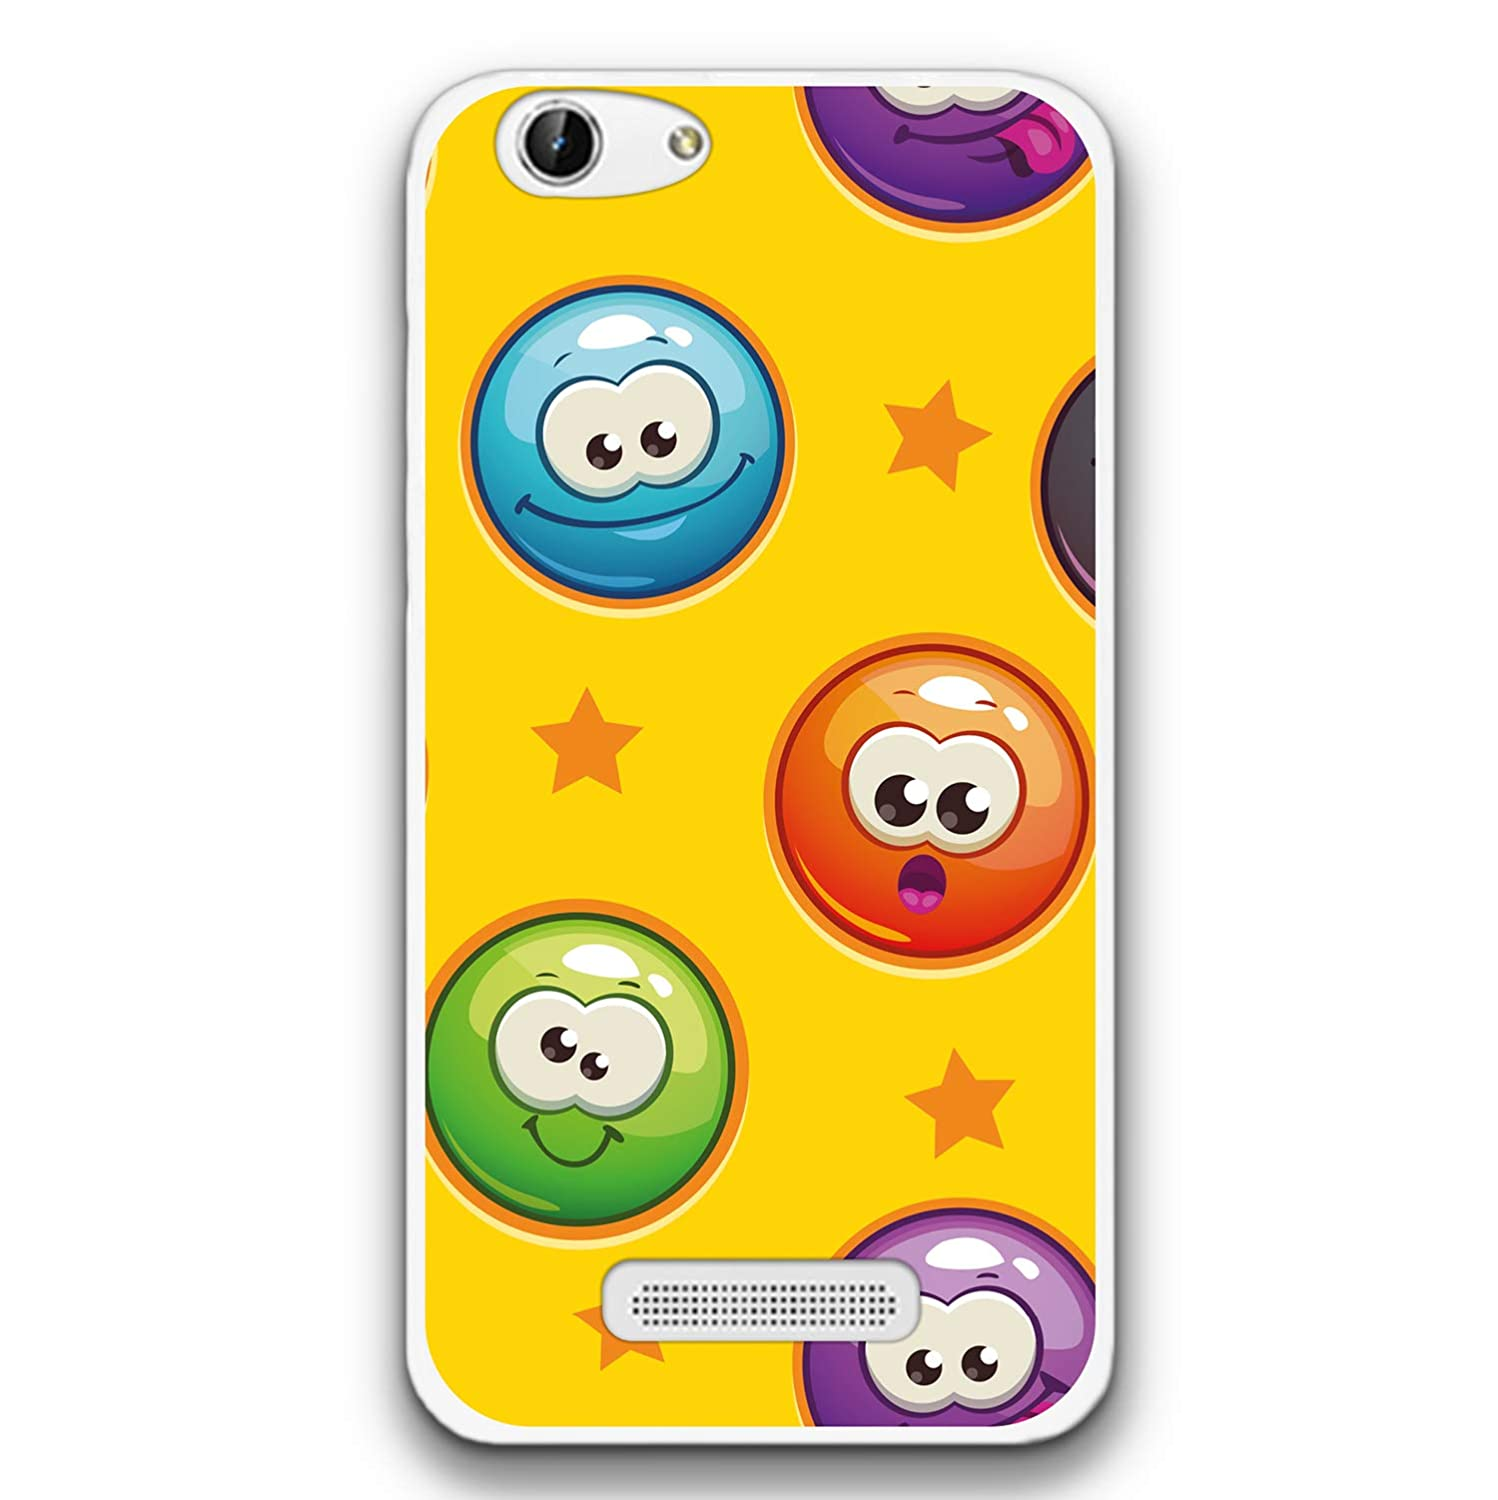 FidelStick Funda Carcasa Gel para Cubot Note S, Emoticon ...